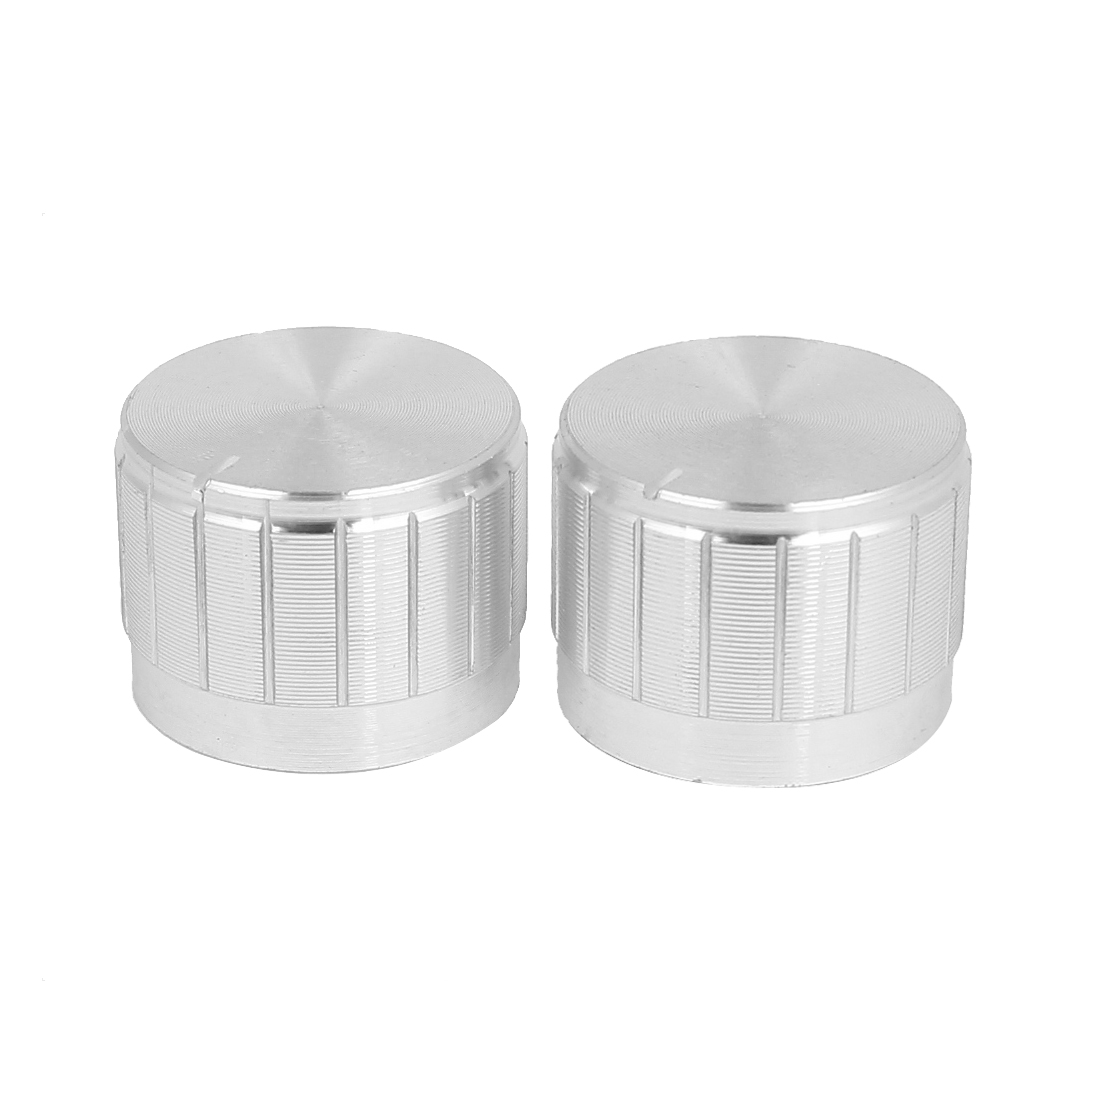 2Pcs 23mm x 17mm Kunrled Shaft Potentiometer Control Rotary Knobs Cap